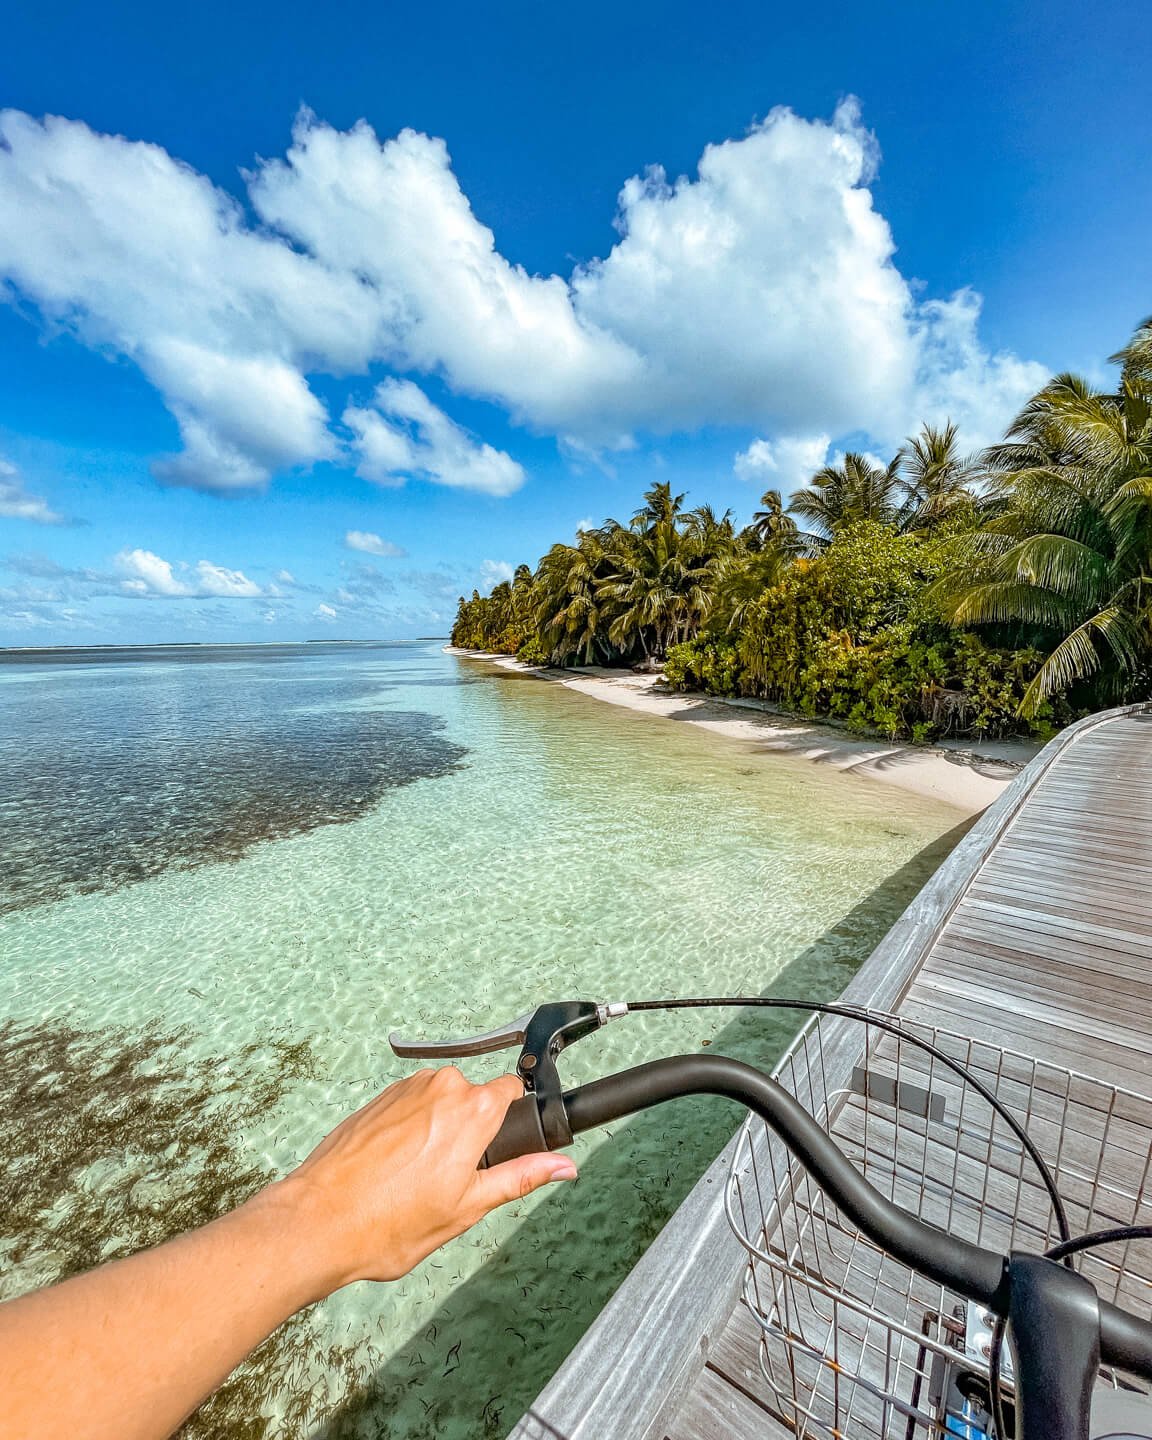 bicylce ride over the jetty in the maldives with island view in the background